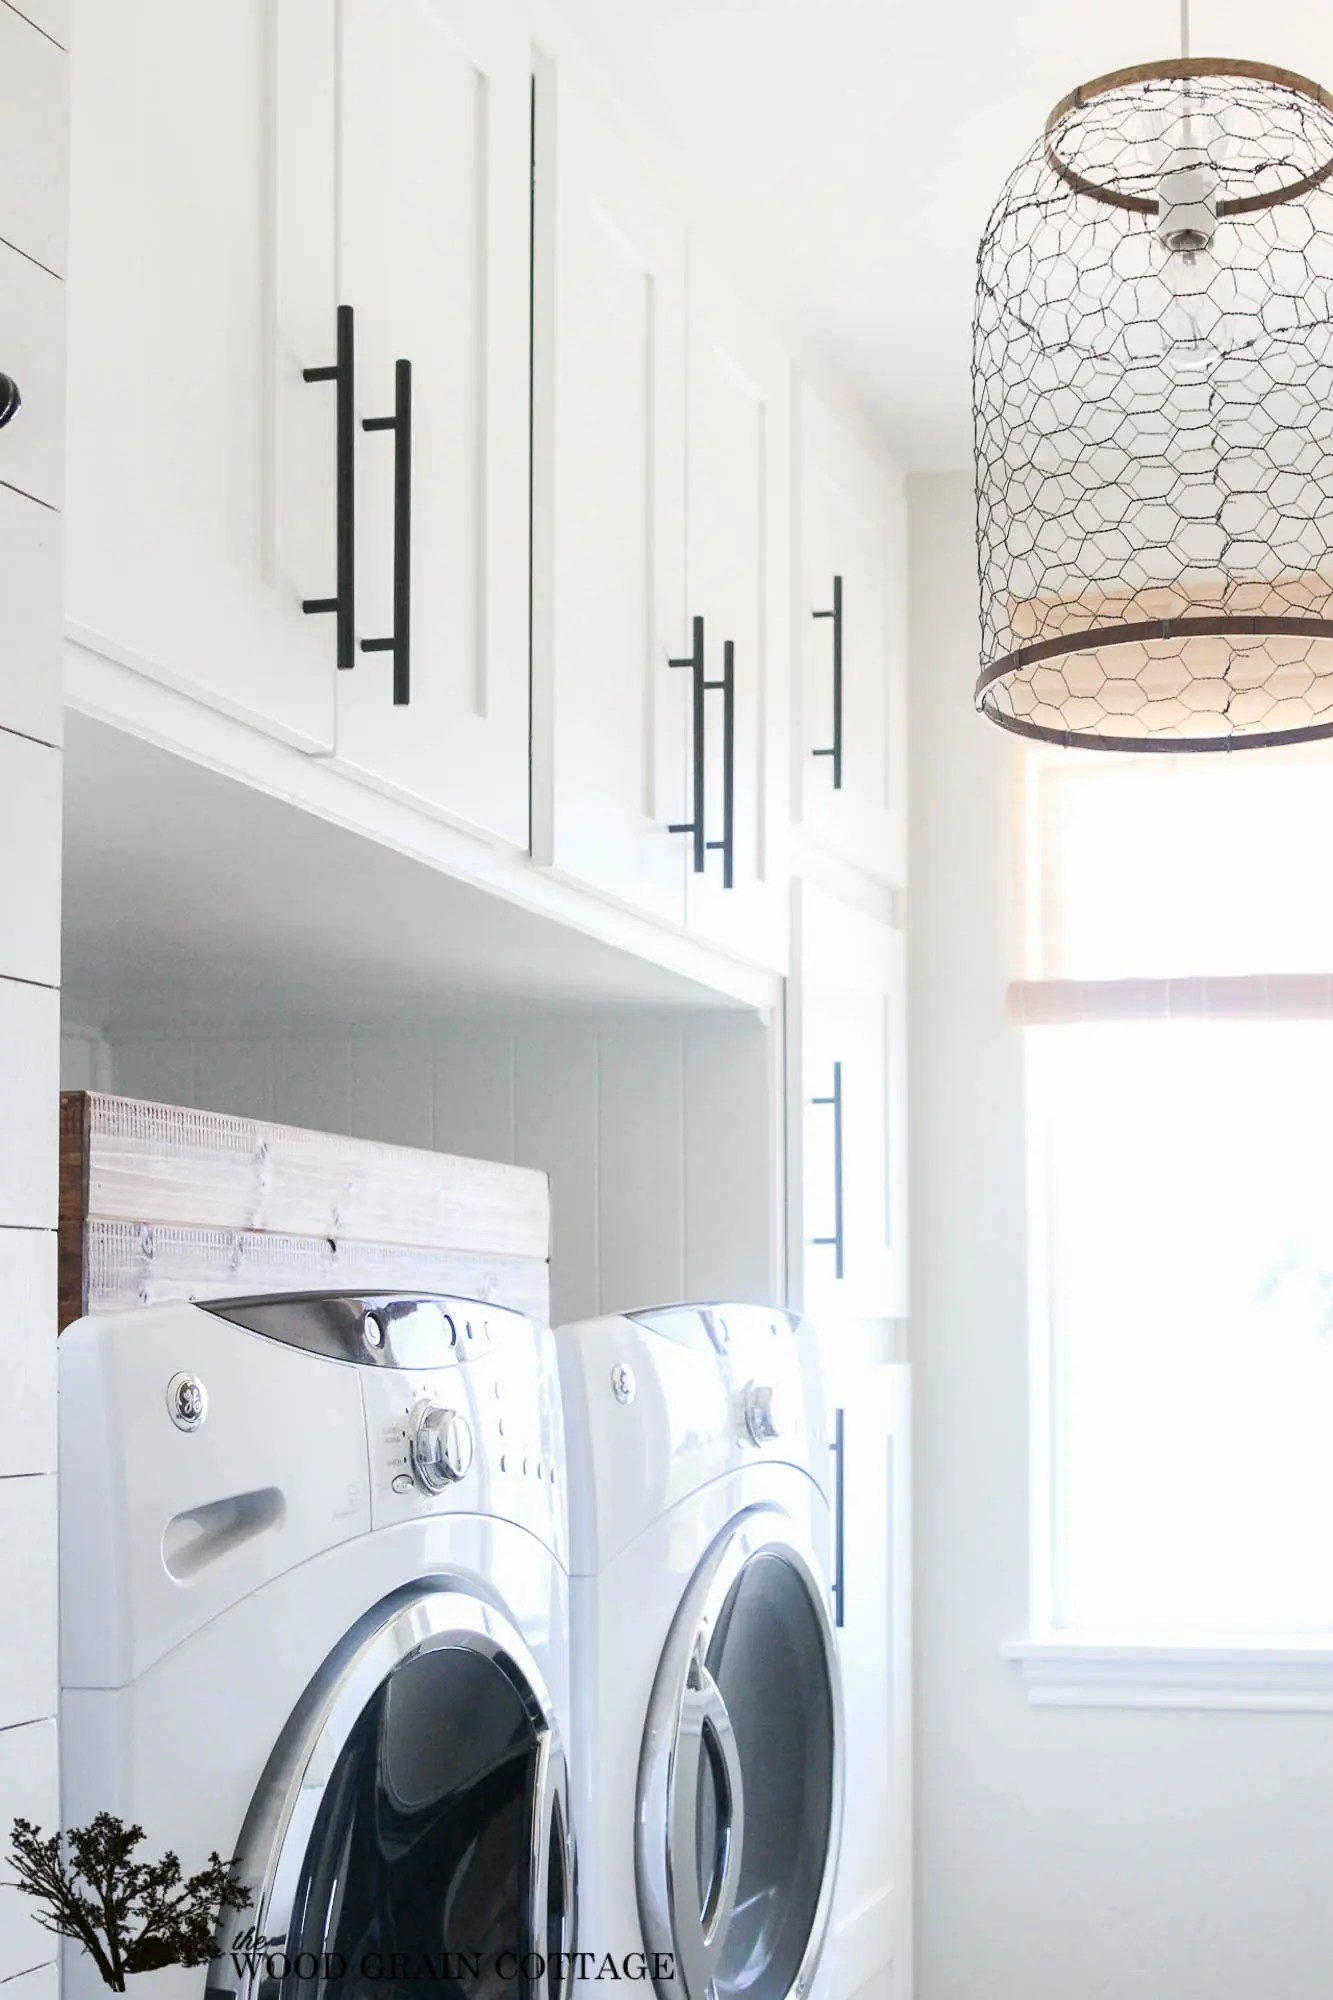 Laundry Room Cabinet Hardware - The Wood Grain Cottage on Laundry Cabinets  id=97021